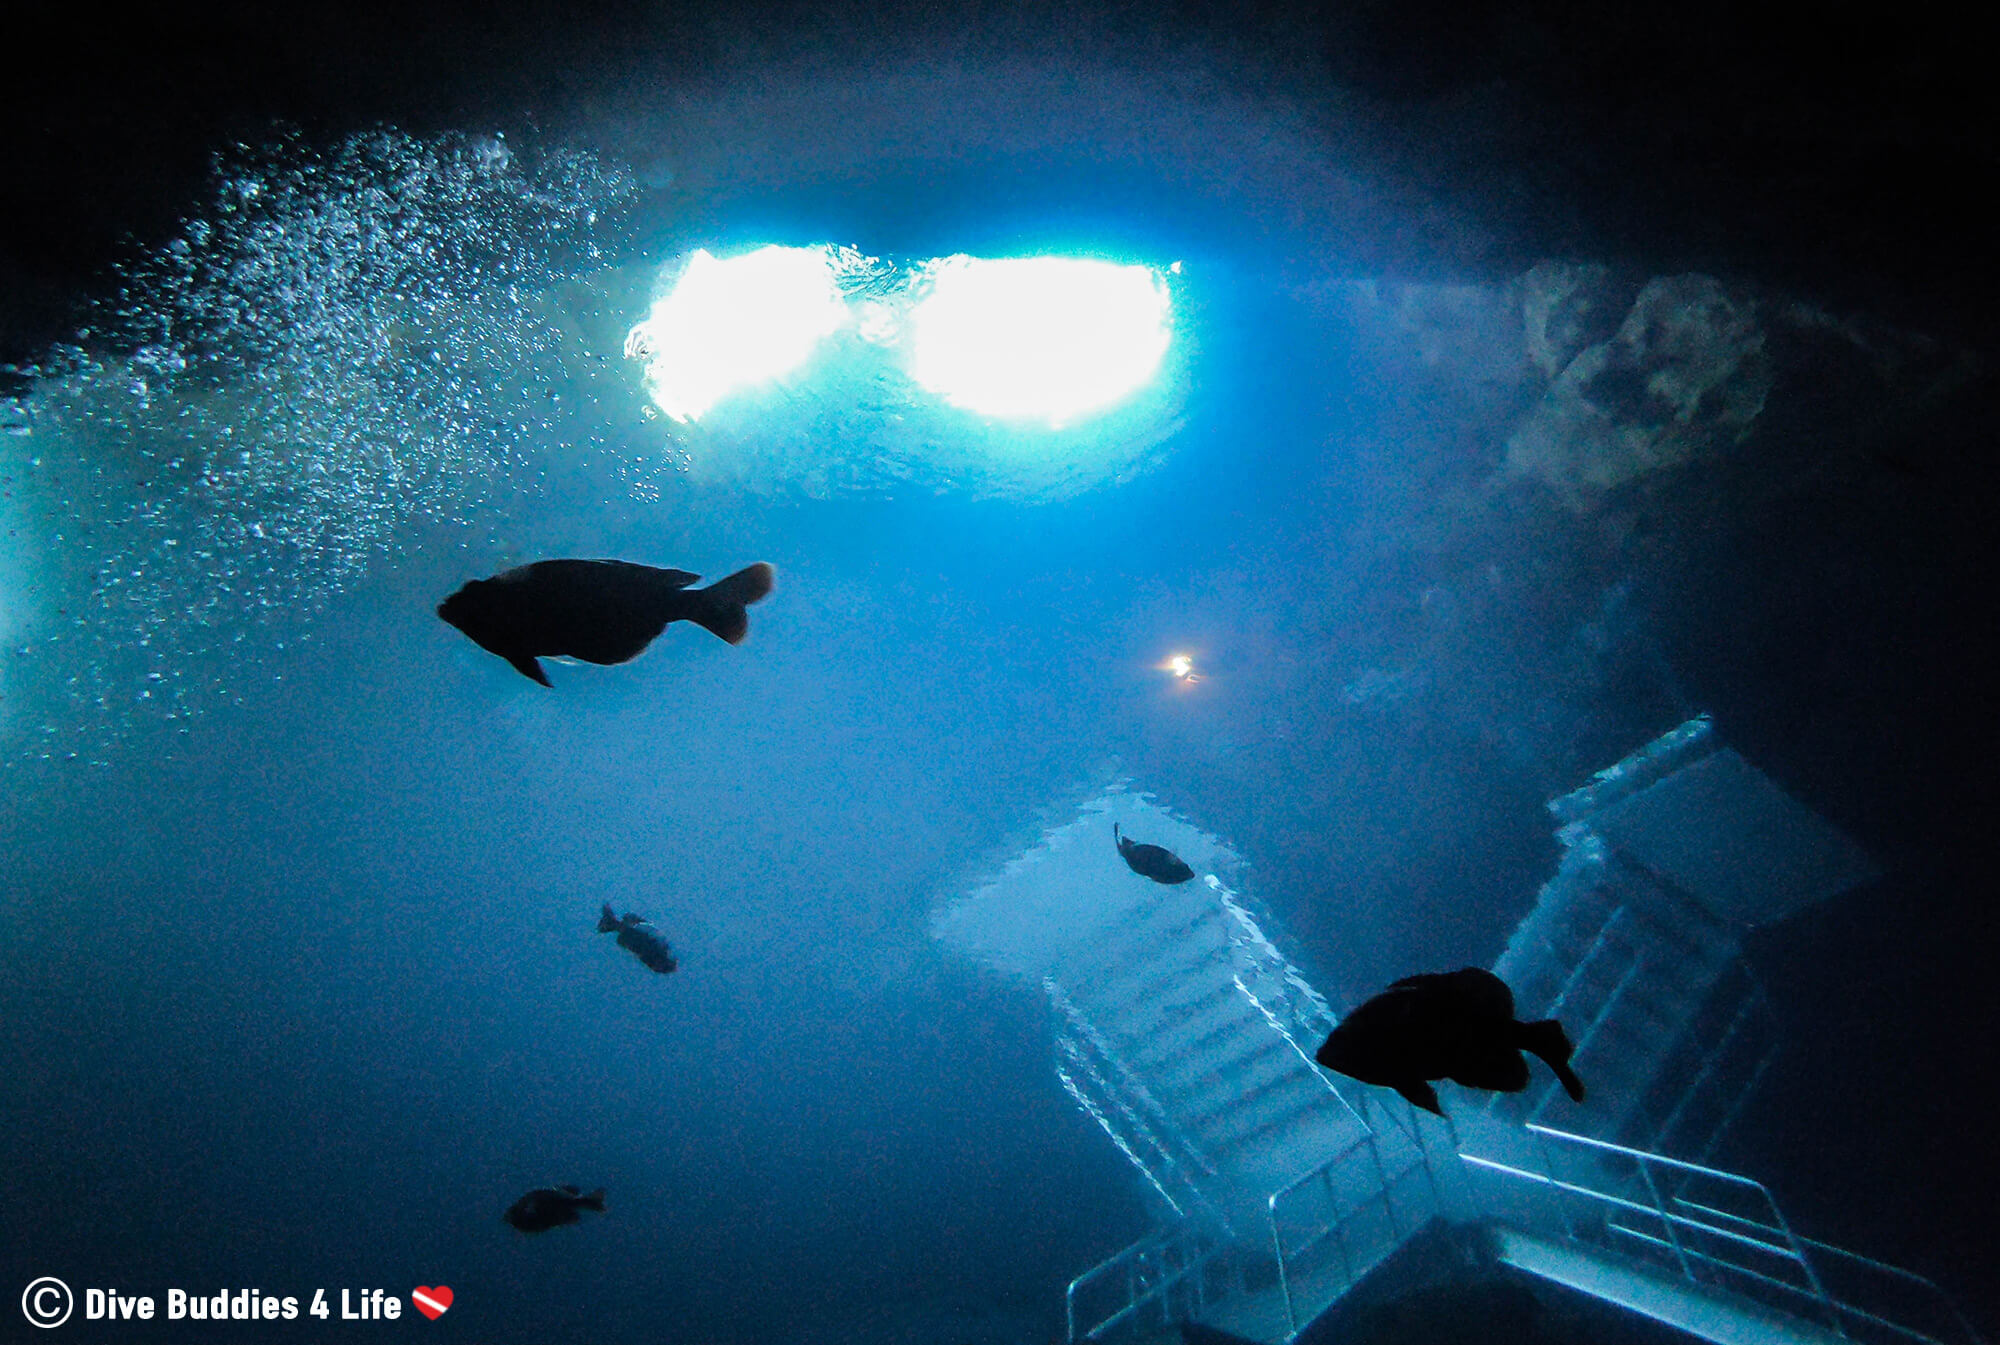 Fish And Devil's Den Stairs Silhouette From Under The Water, Florida, USA